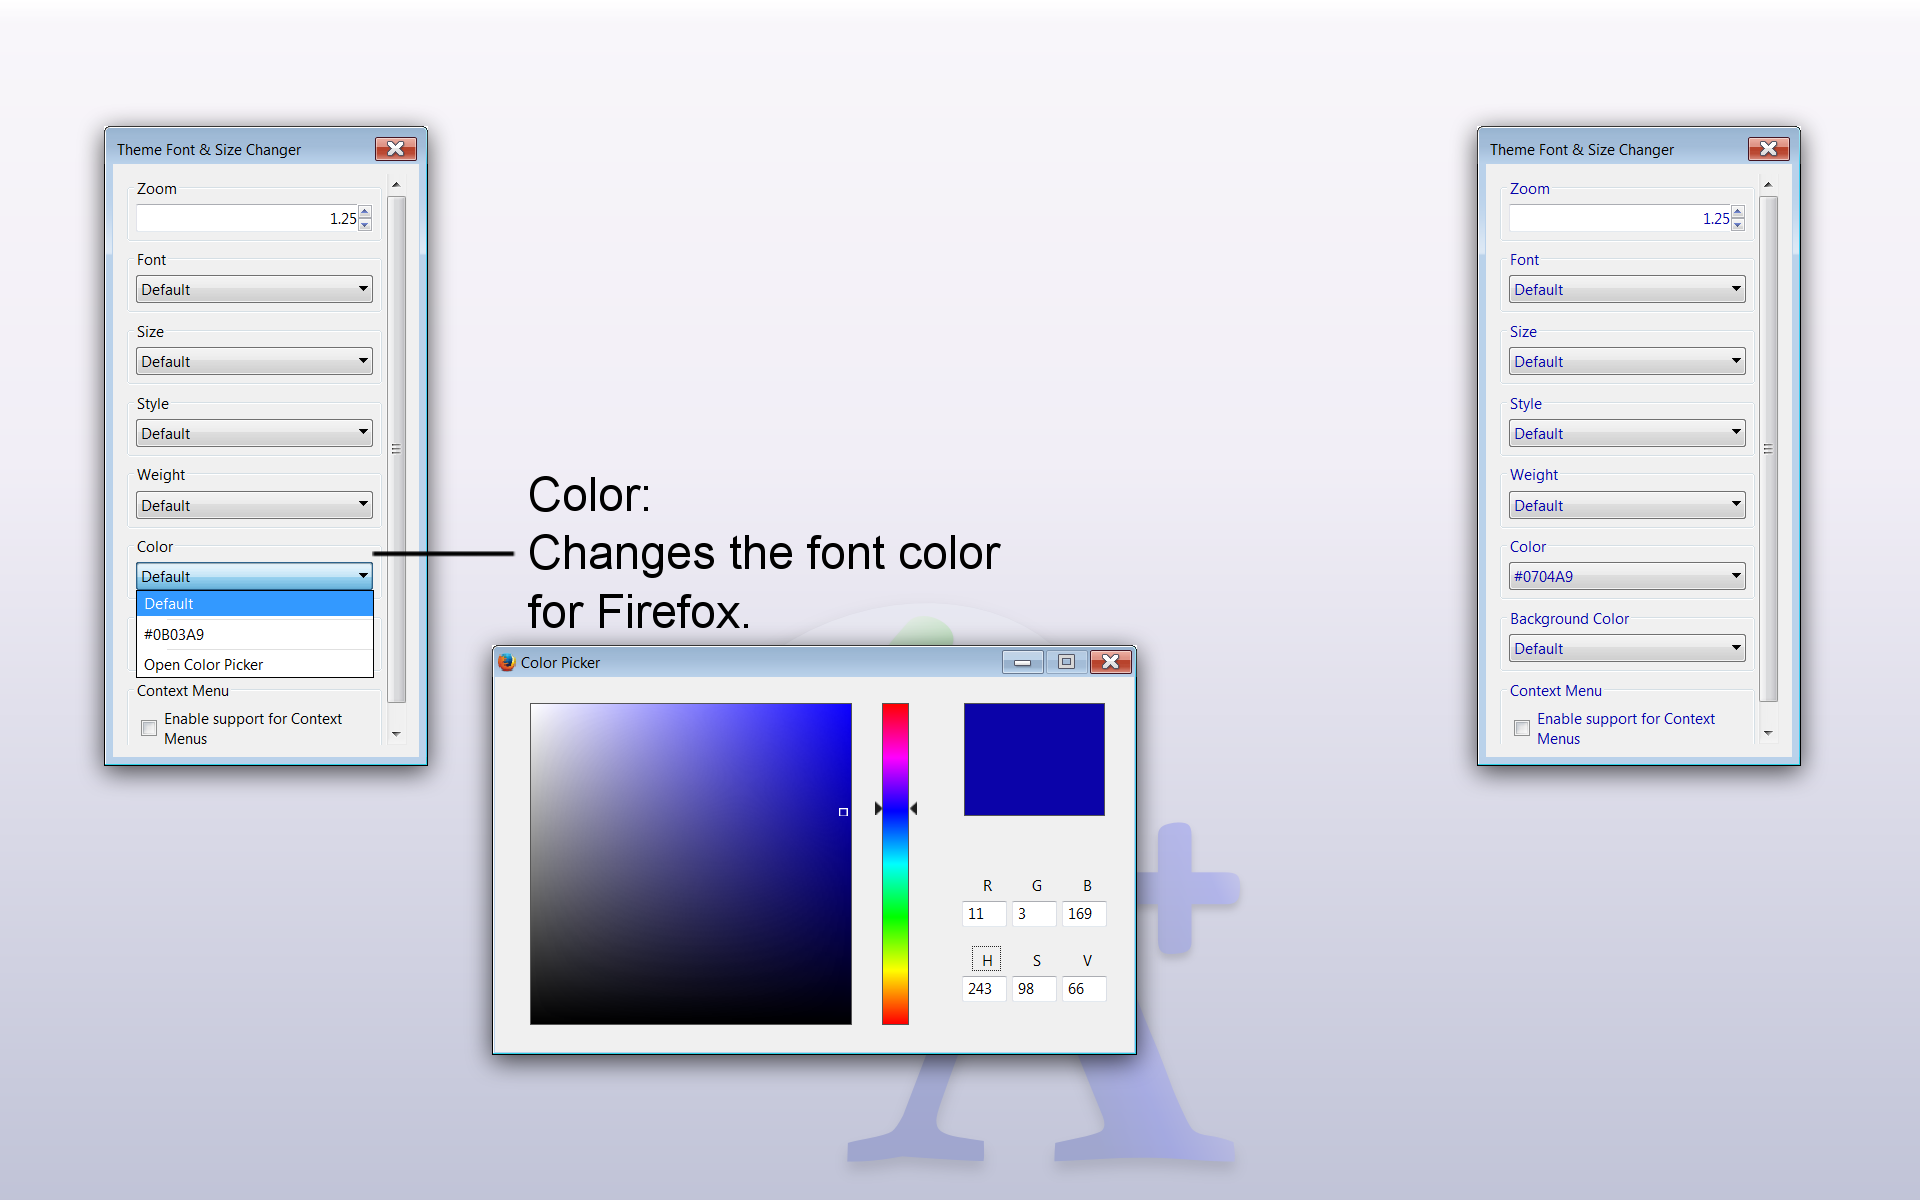 Theme Font & Size Changer: Change the font size and font family in